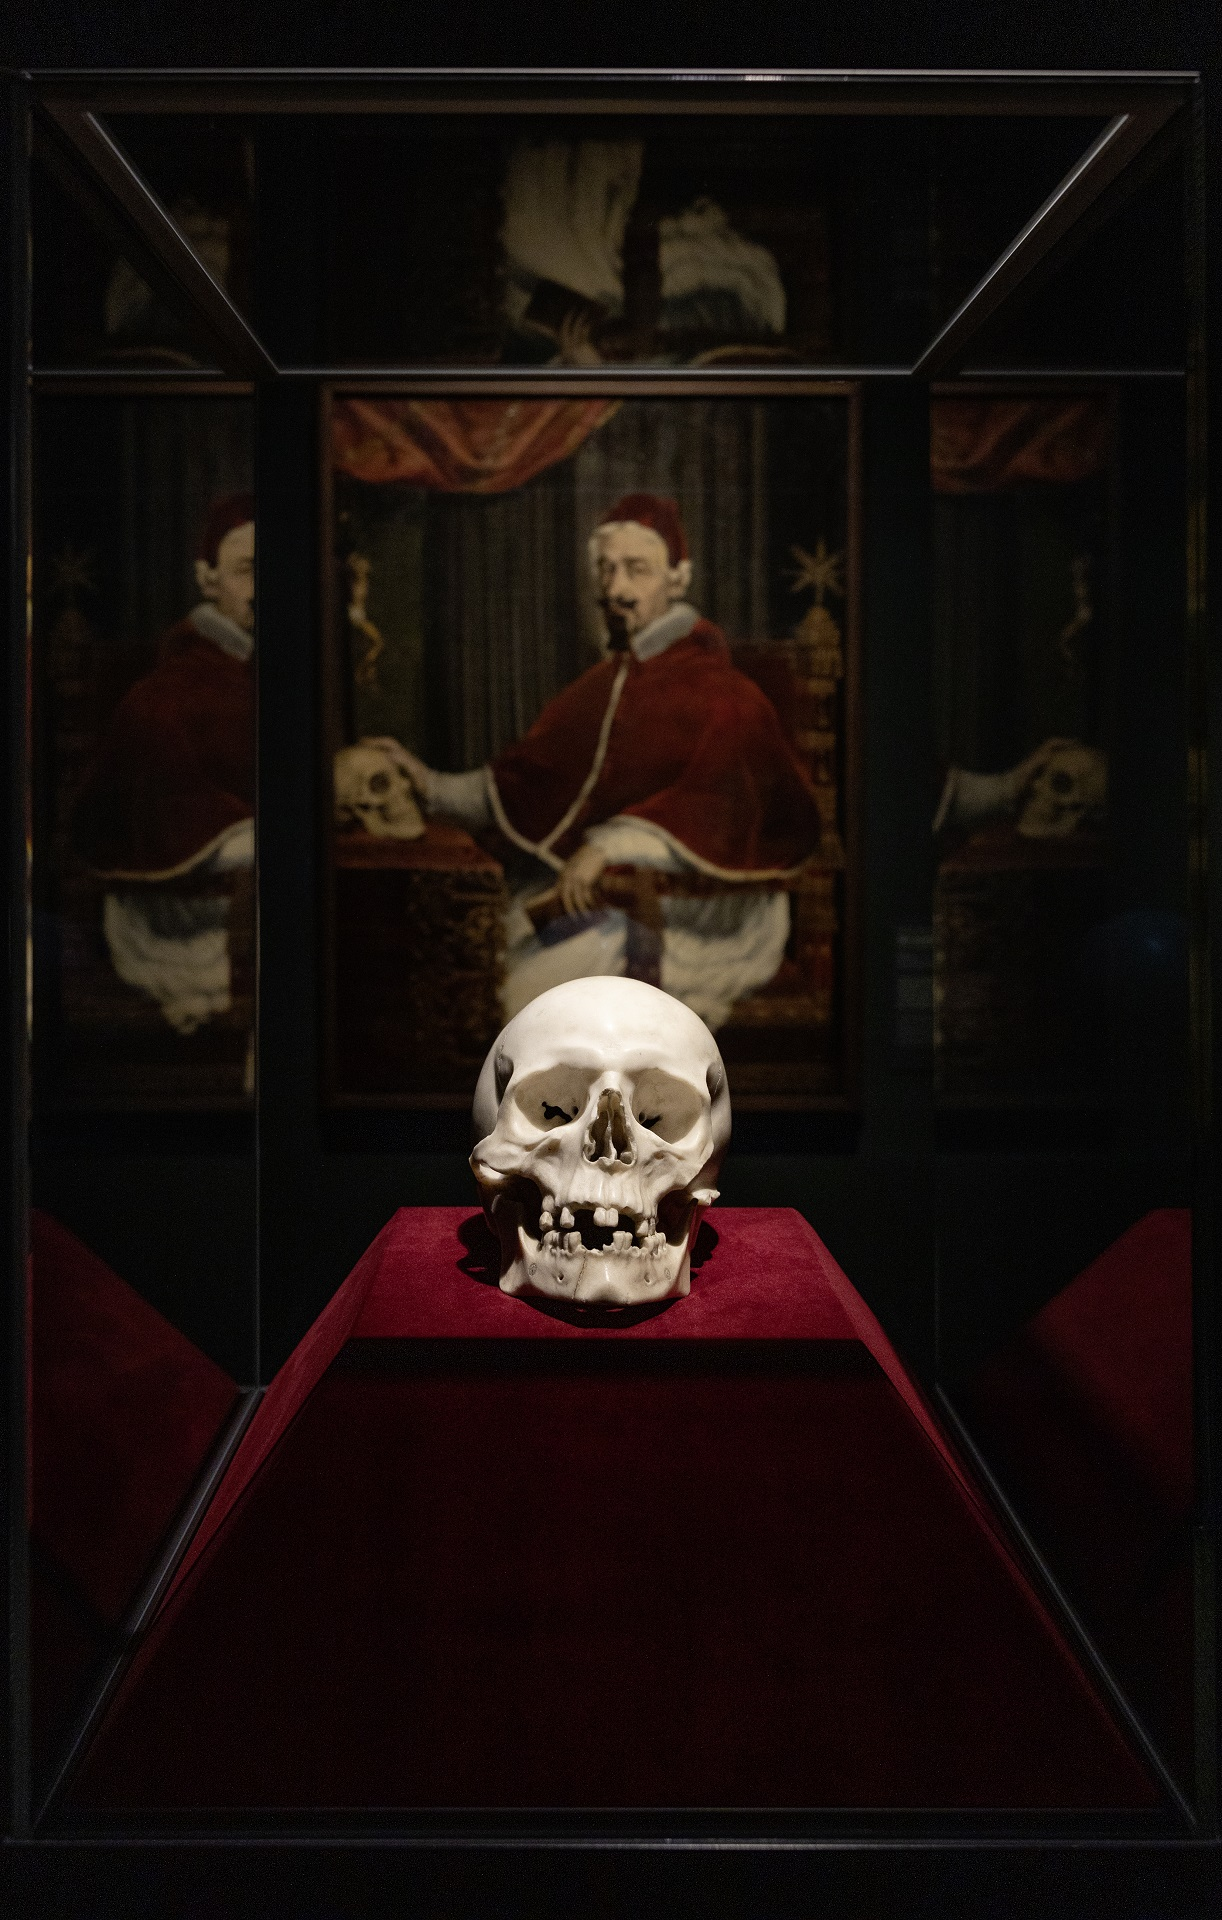 A Marble Skull Displayed for Centuries at a German Castle Turns Out to Be the Work of Bernini, Researchers Have Discovered